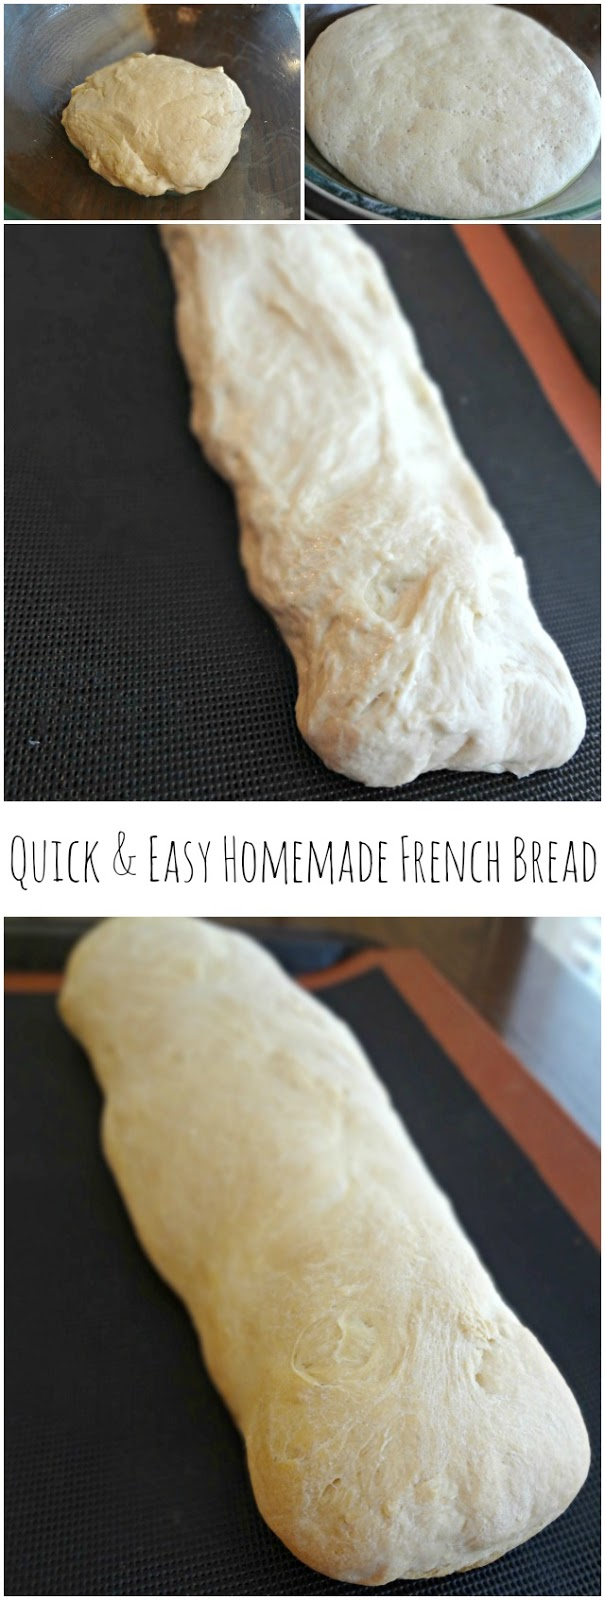 Quick & Easy Homemade French Bread